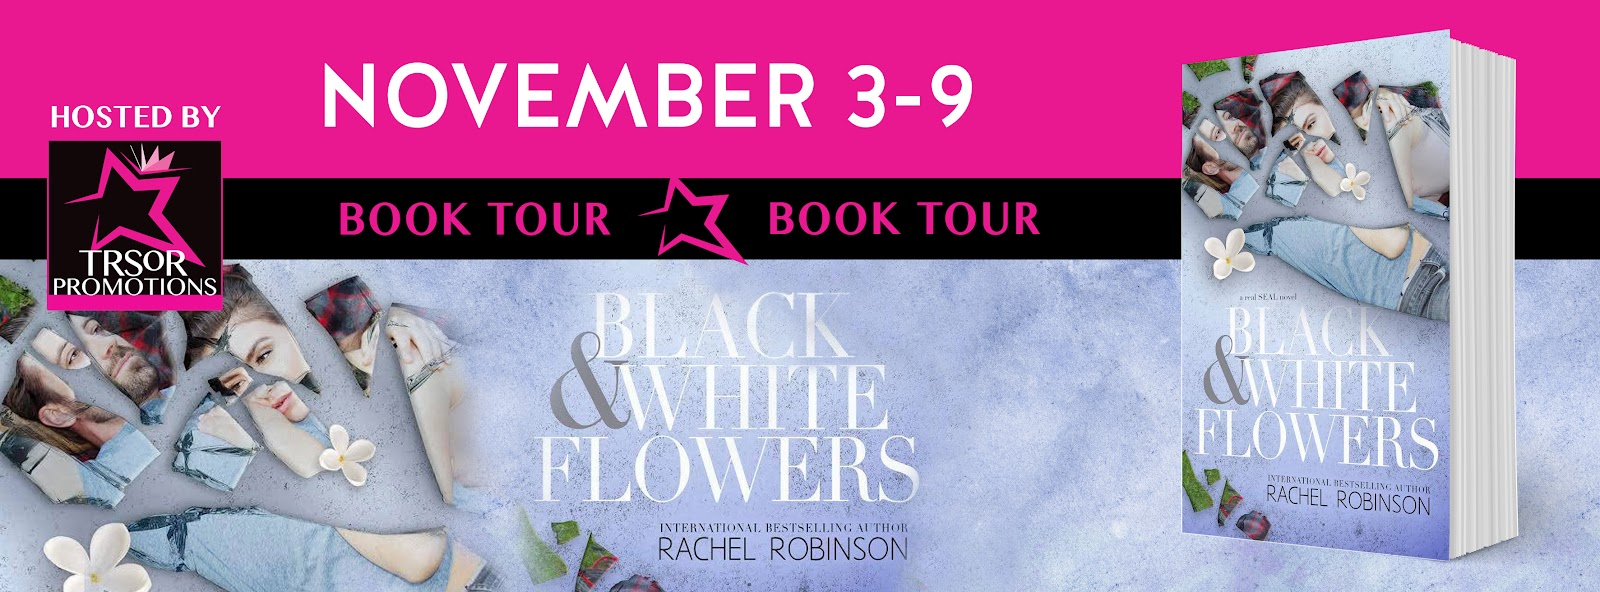 BW_FLOWERS_BOOK_TOUR.jpg